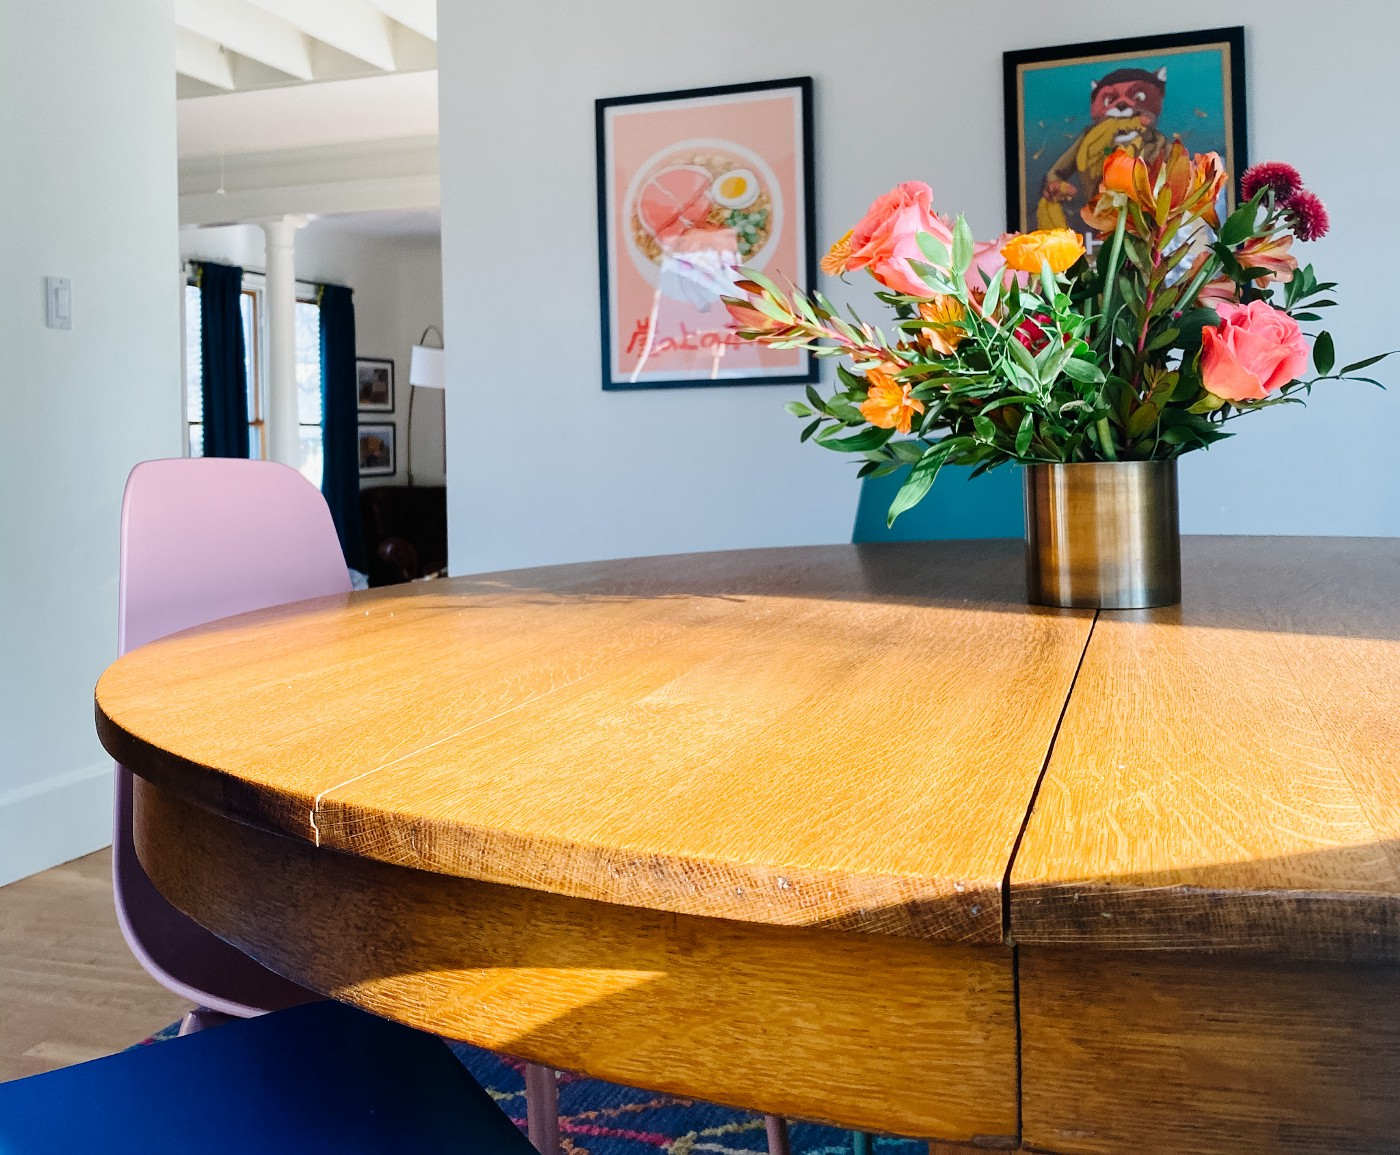 A rounded wooden table with a vase of flowers on it in a living room.